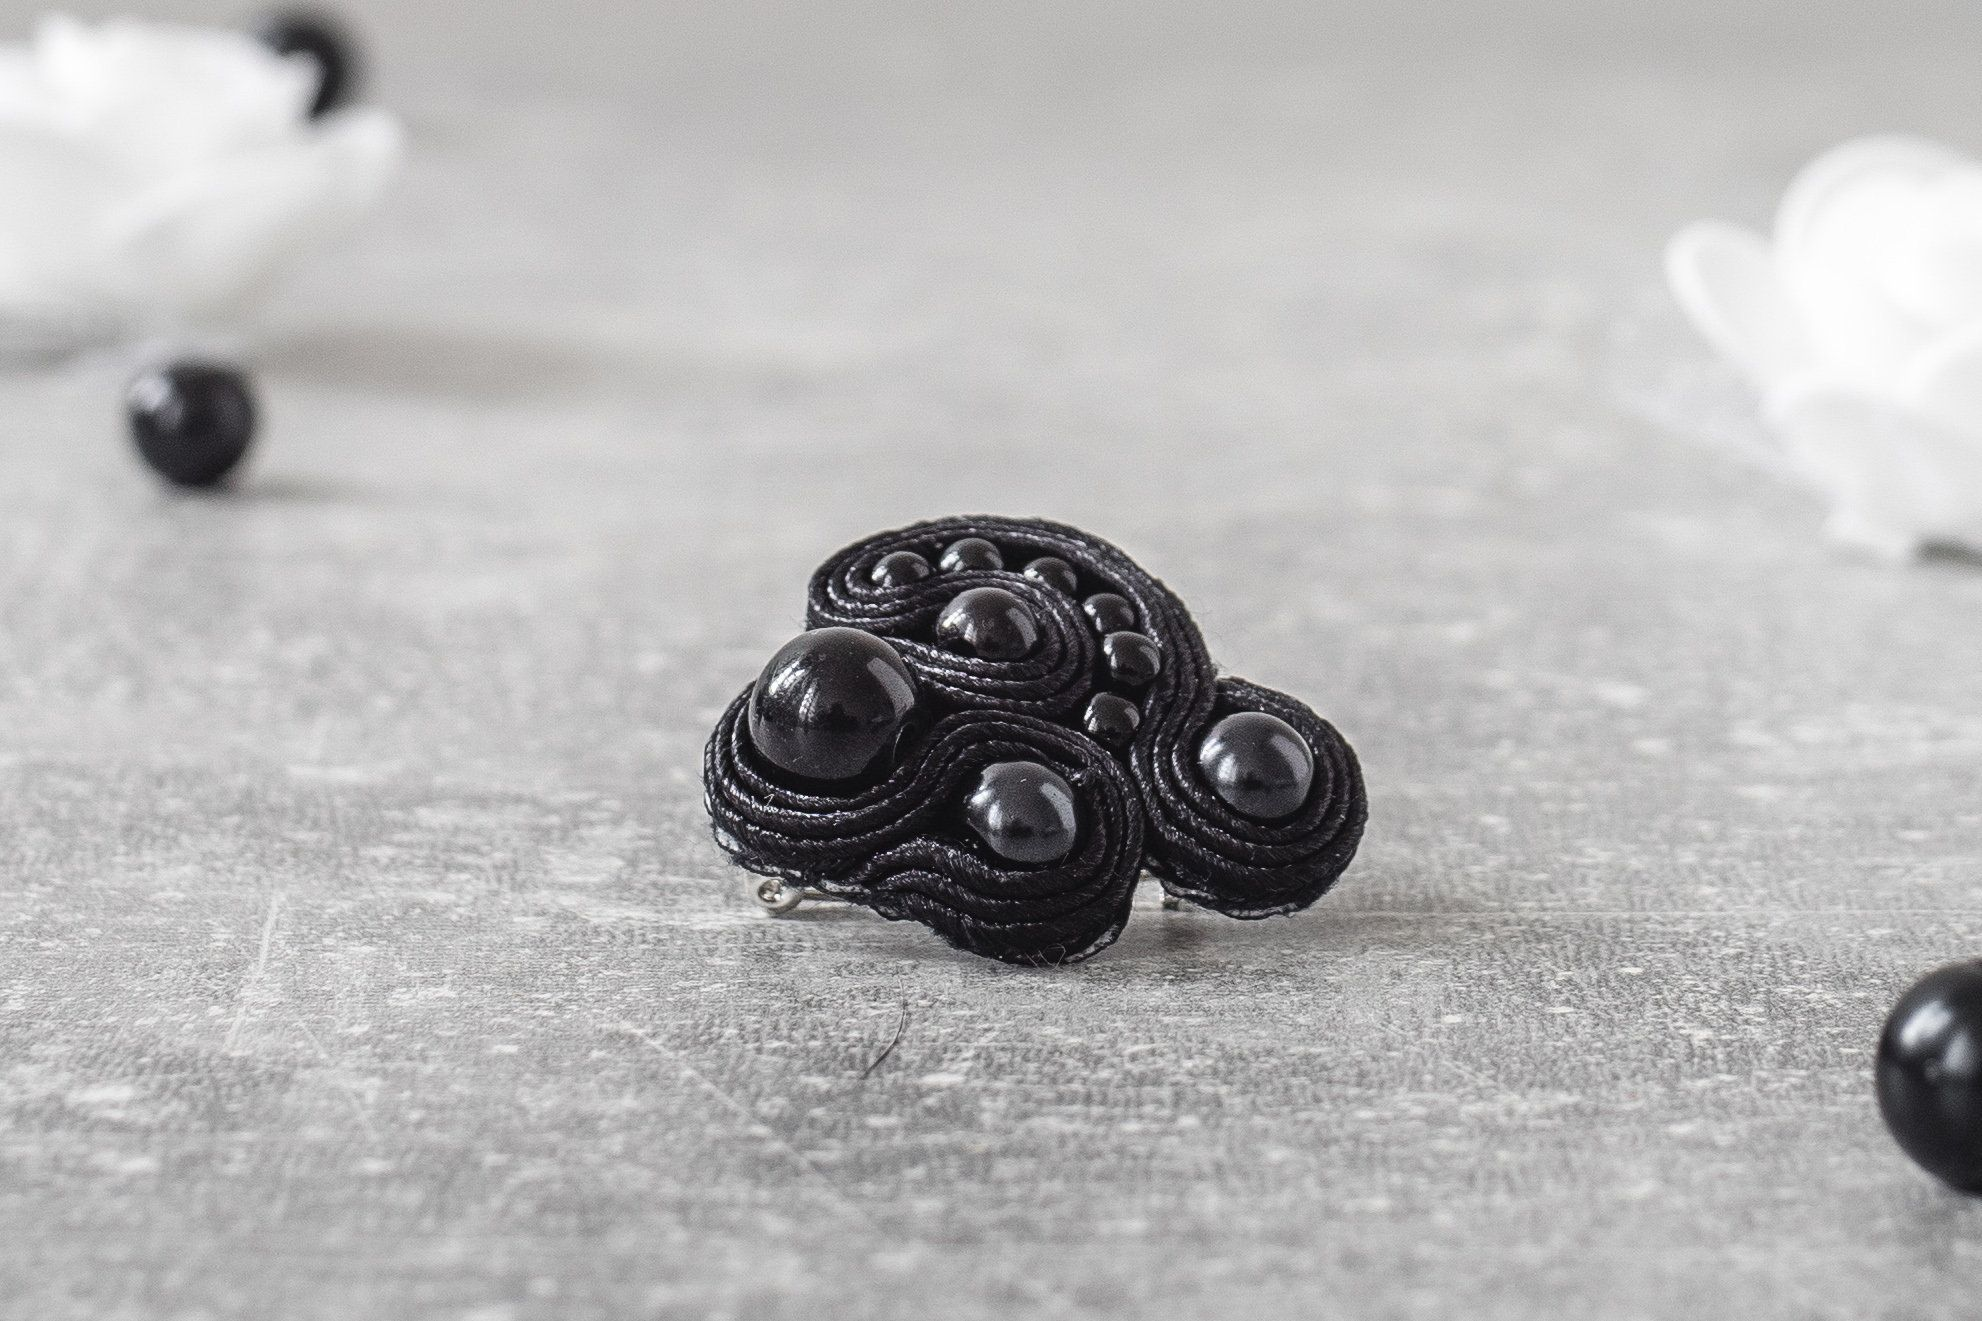 Black Gothic Brooch / Soutache Jewelry / Goth Jewelry / Vegan Leather / Handsewn Brooch / Gift for Her / Casual Goth Store #casualgoth